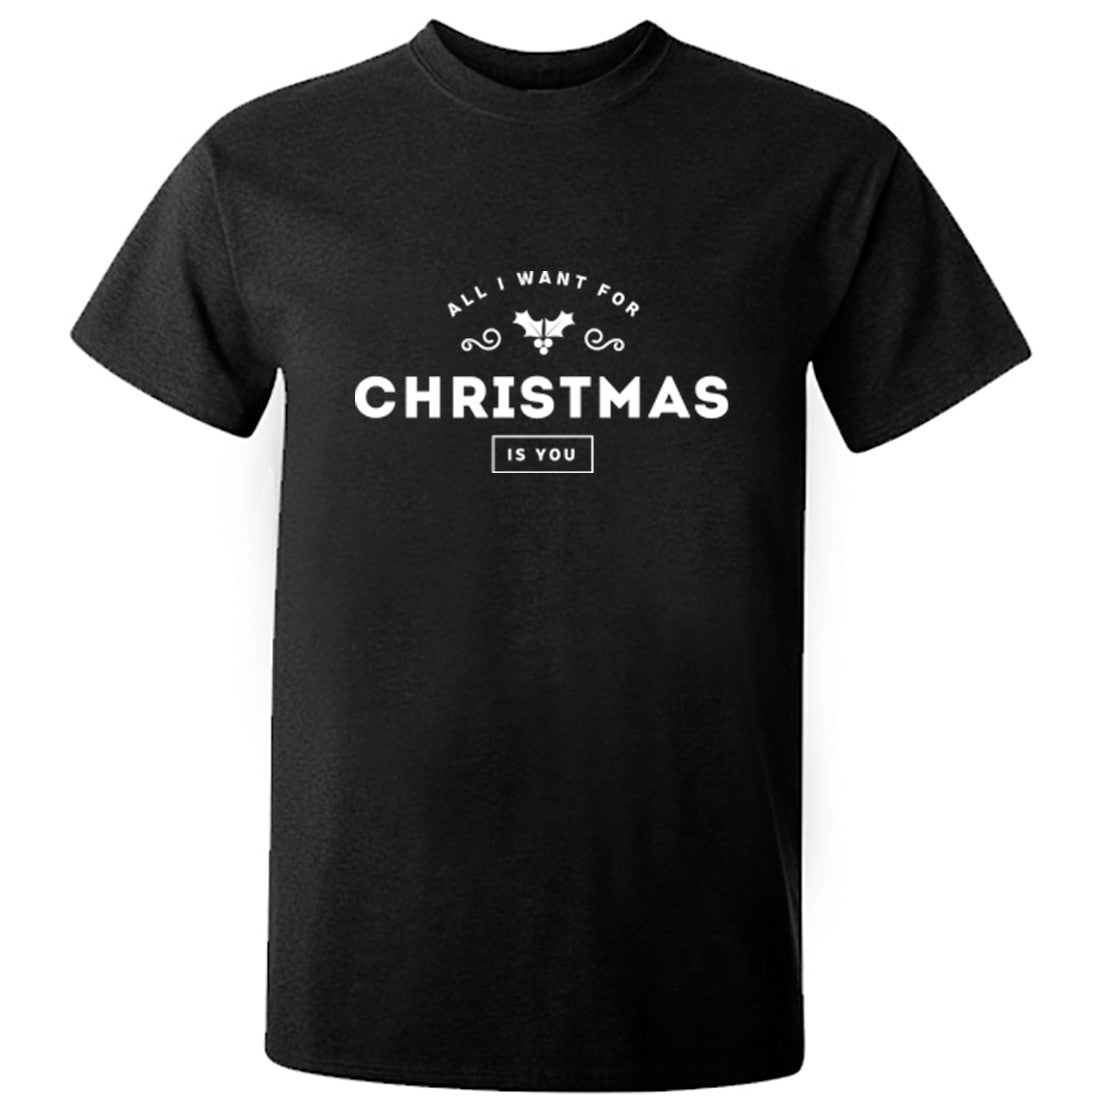 All I Want For Christmas Is You Design Unisex Fit T-Shirt K1251